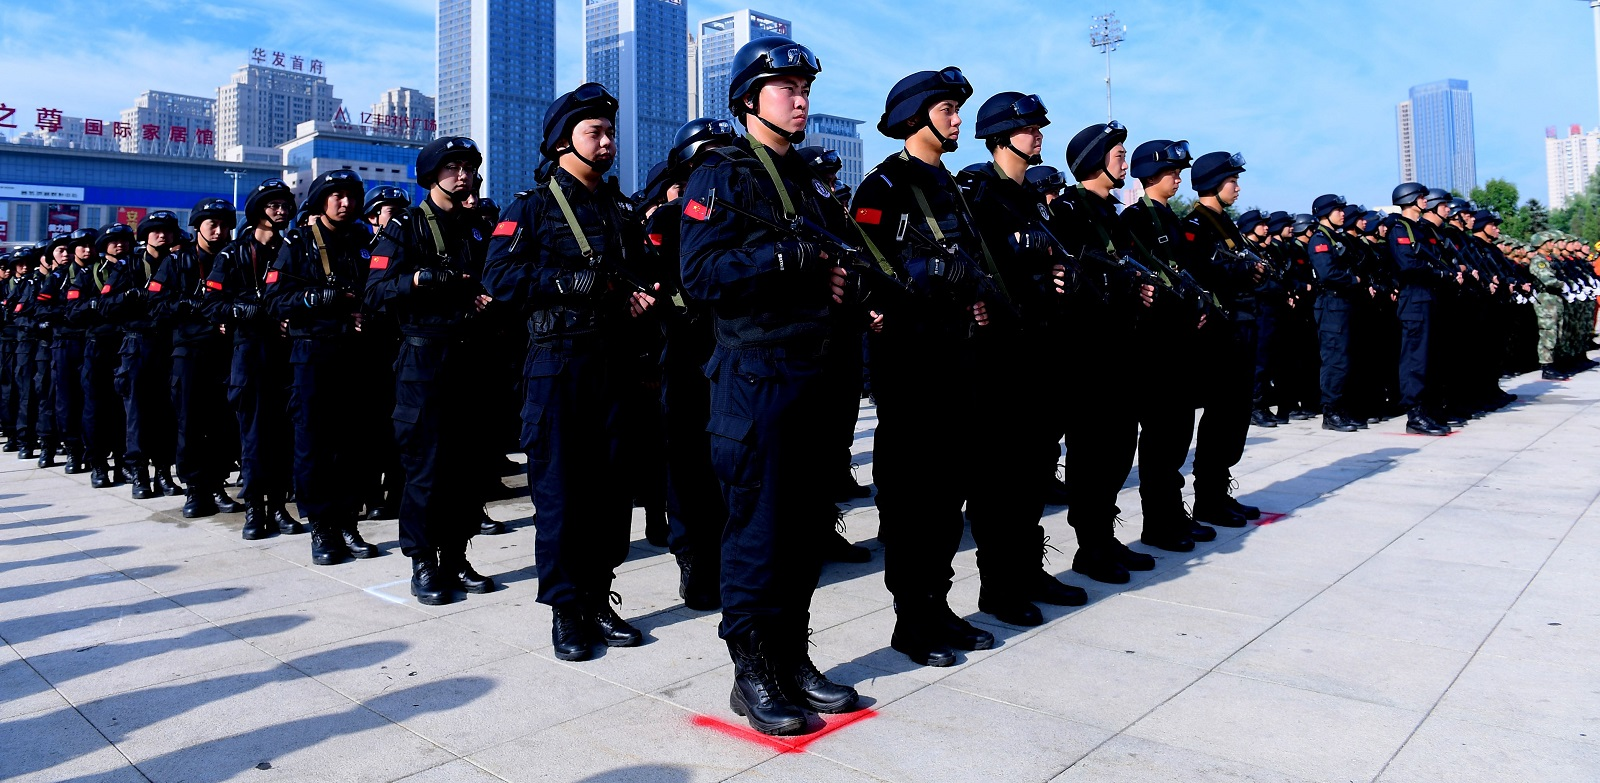 Shenyang Public Security Bureau holds security guard pep rally  for 19th CPC Congress (Photo: Getty Images)